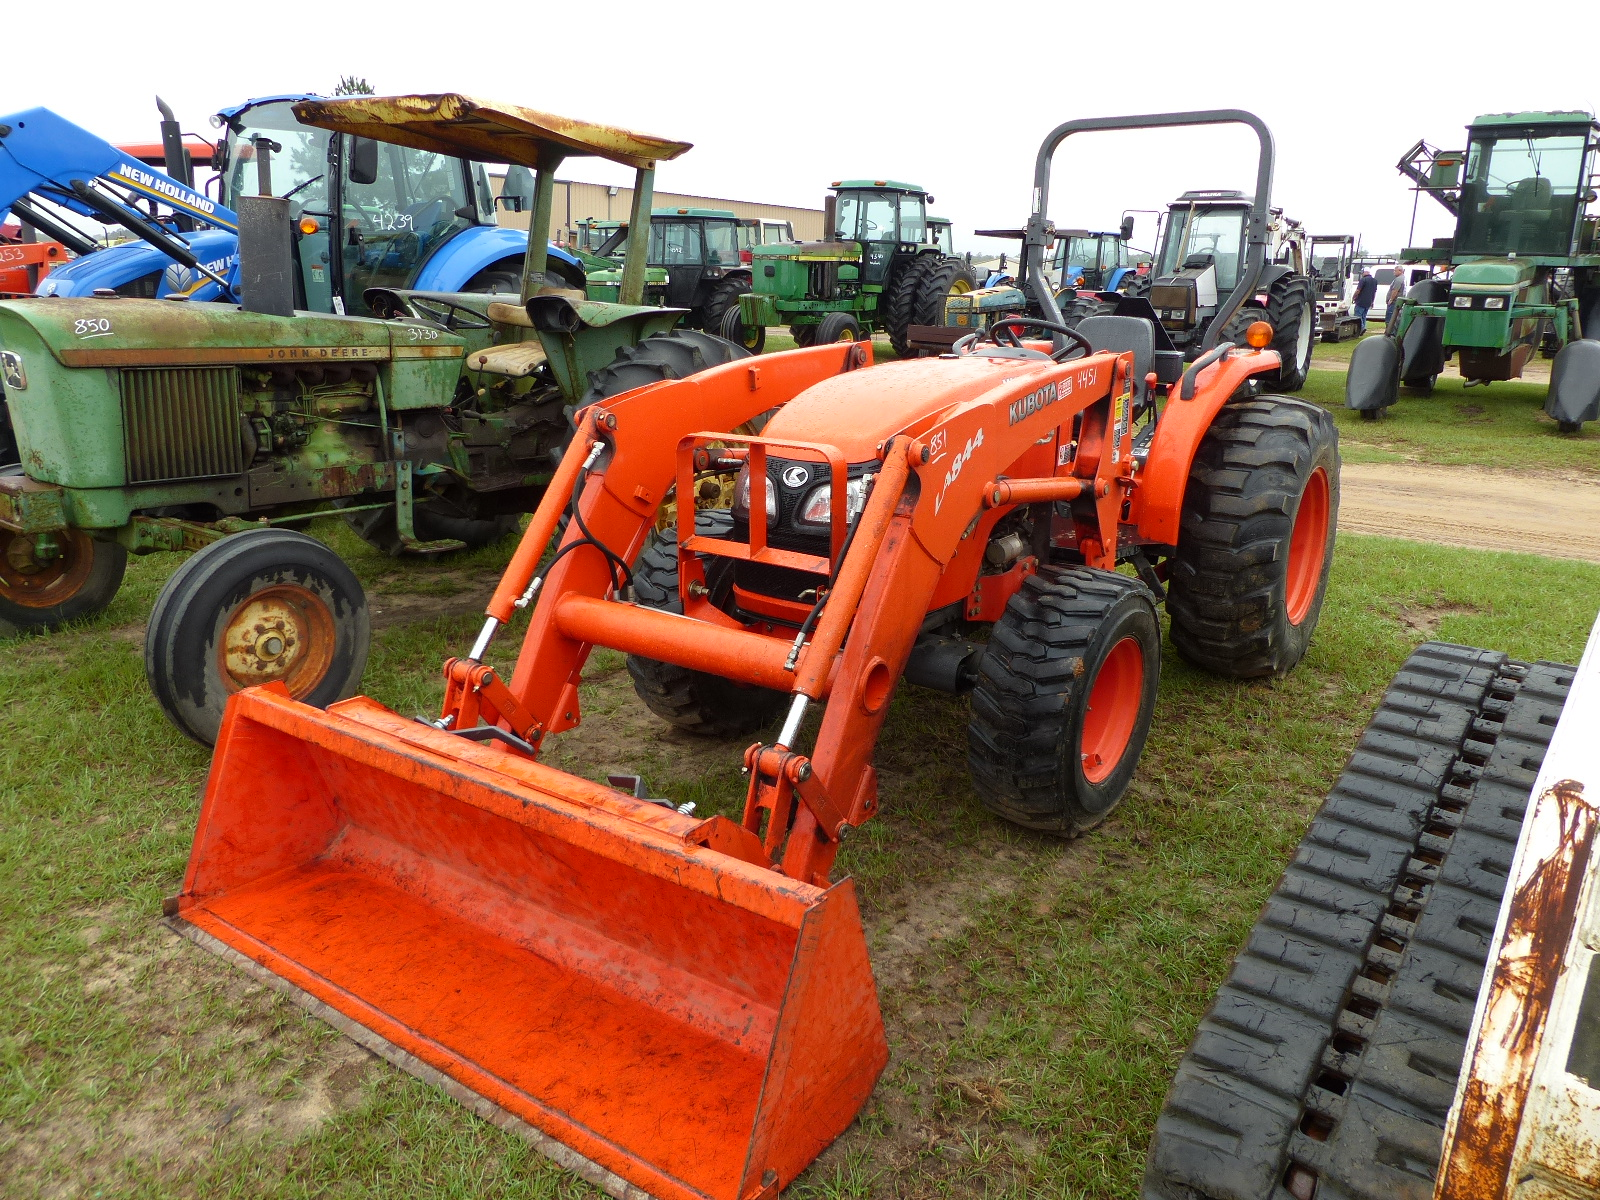 hight resolution of  kubota l245dt 4wd repair manual id 4451 kubota mx5100 tractor open